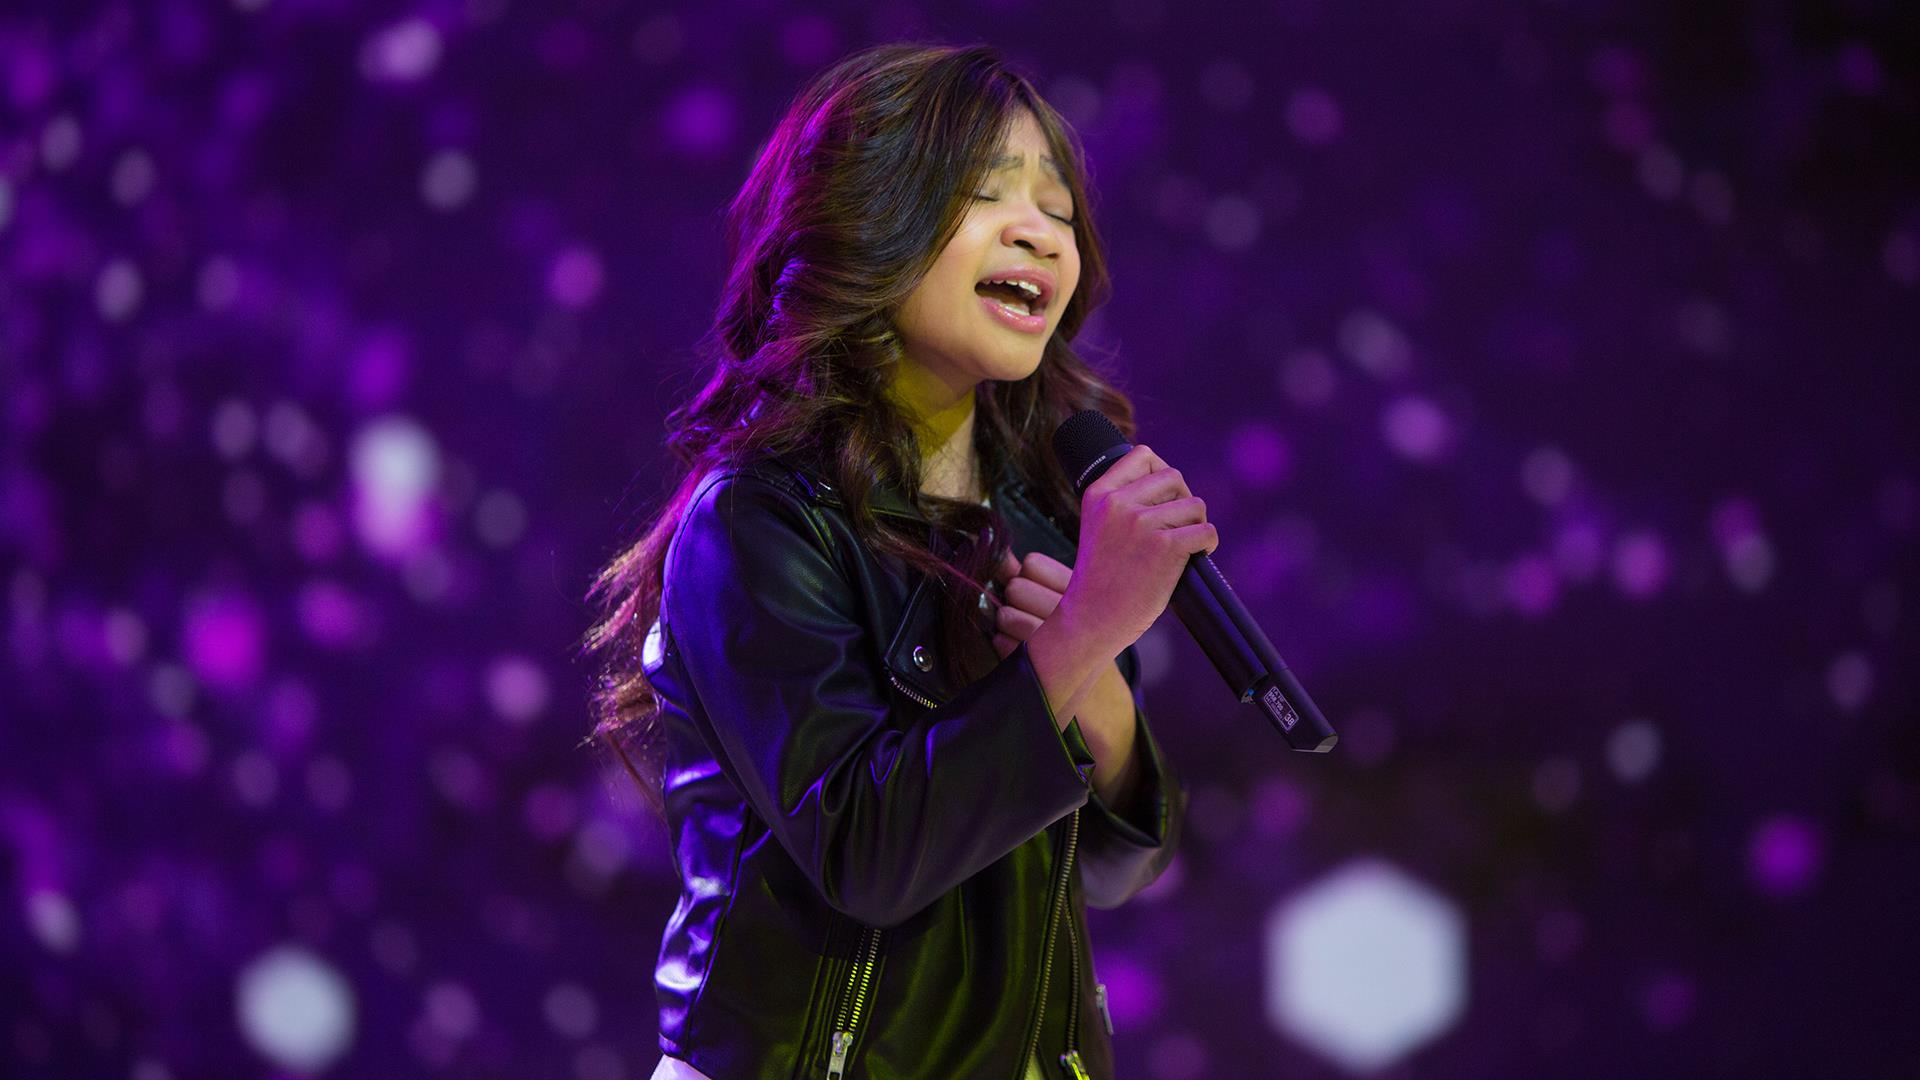 Angelica Hale age, Birthday, Height, Net Worth, Family, Salary